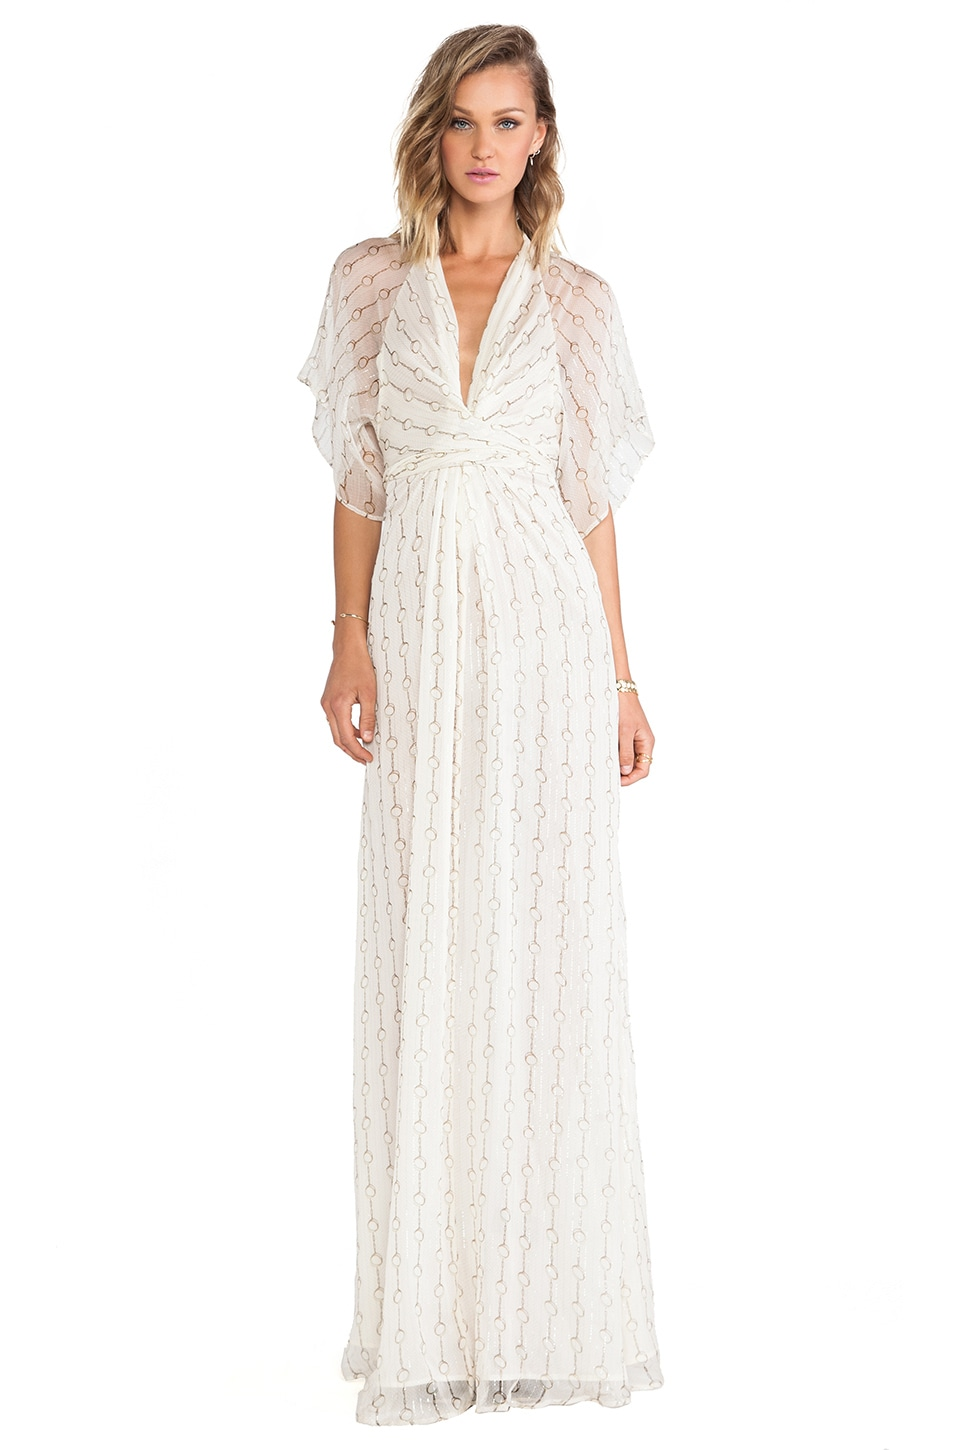 Issa Pollyanna Maxi Dress in Vapor